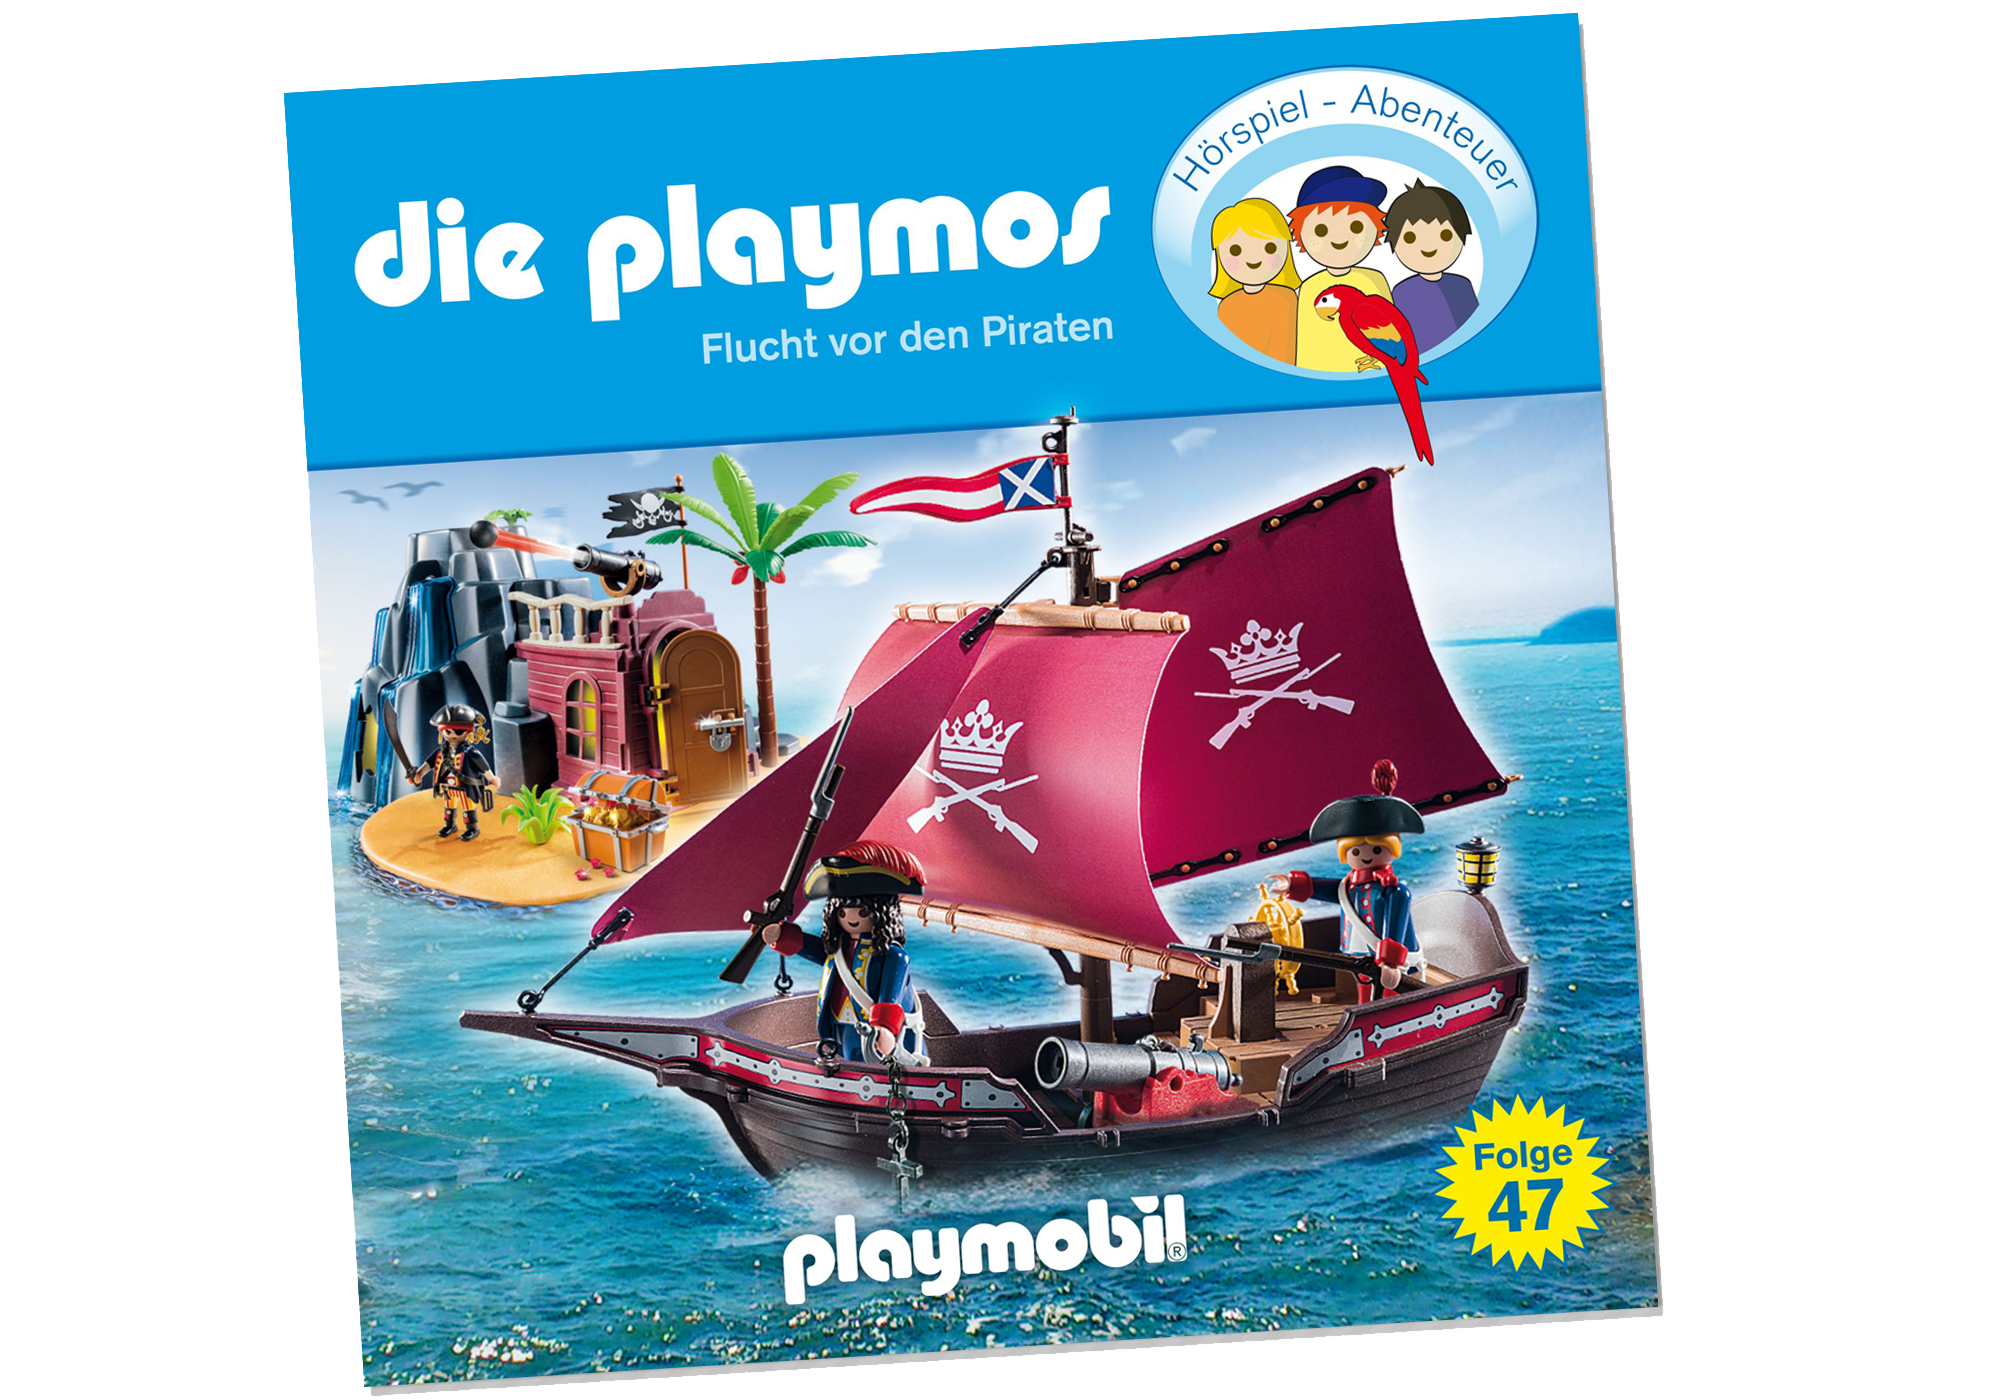 http://media.playmobil.com/i/playmobil/80254_product_detail